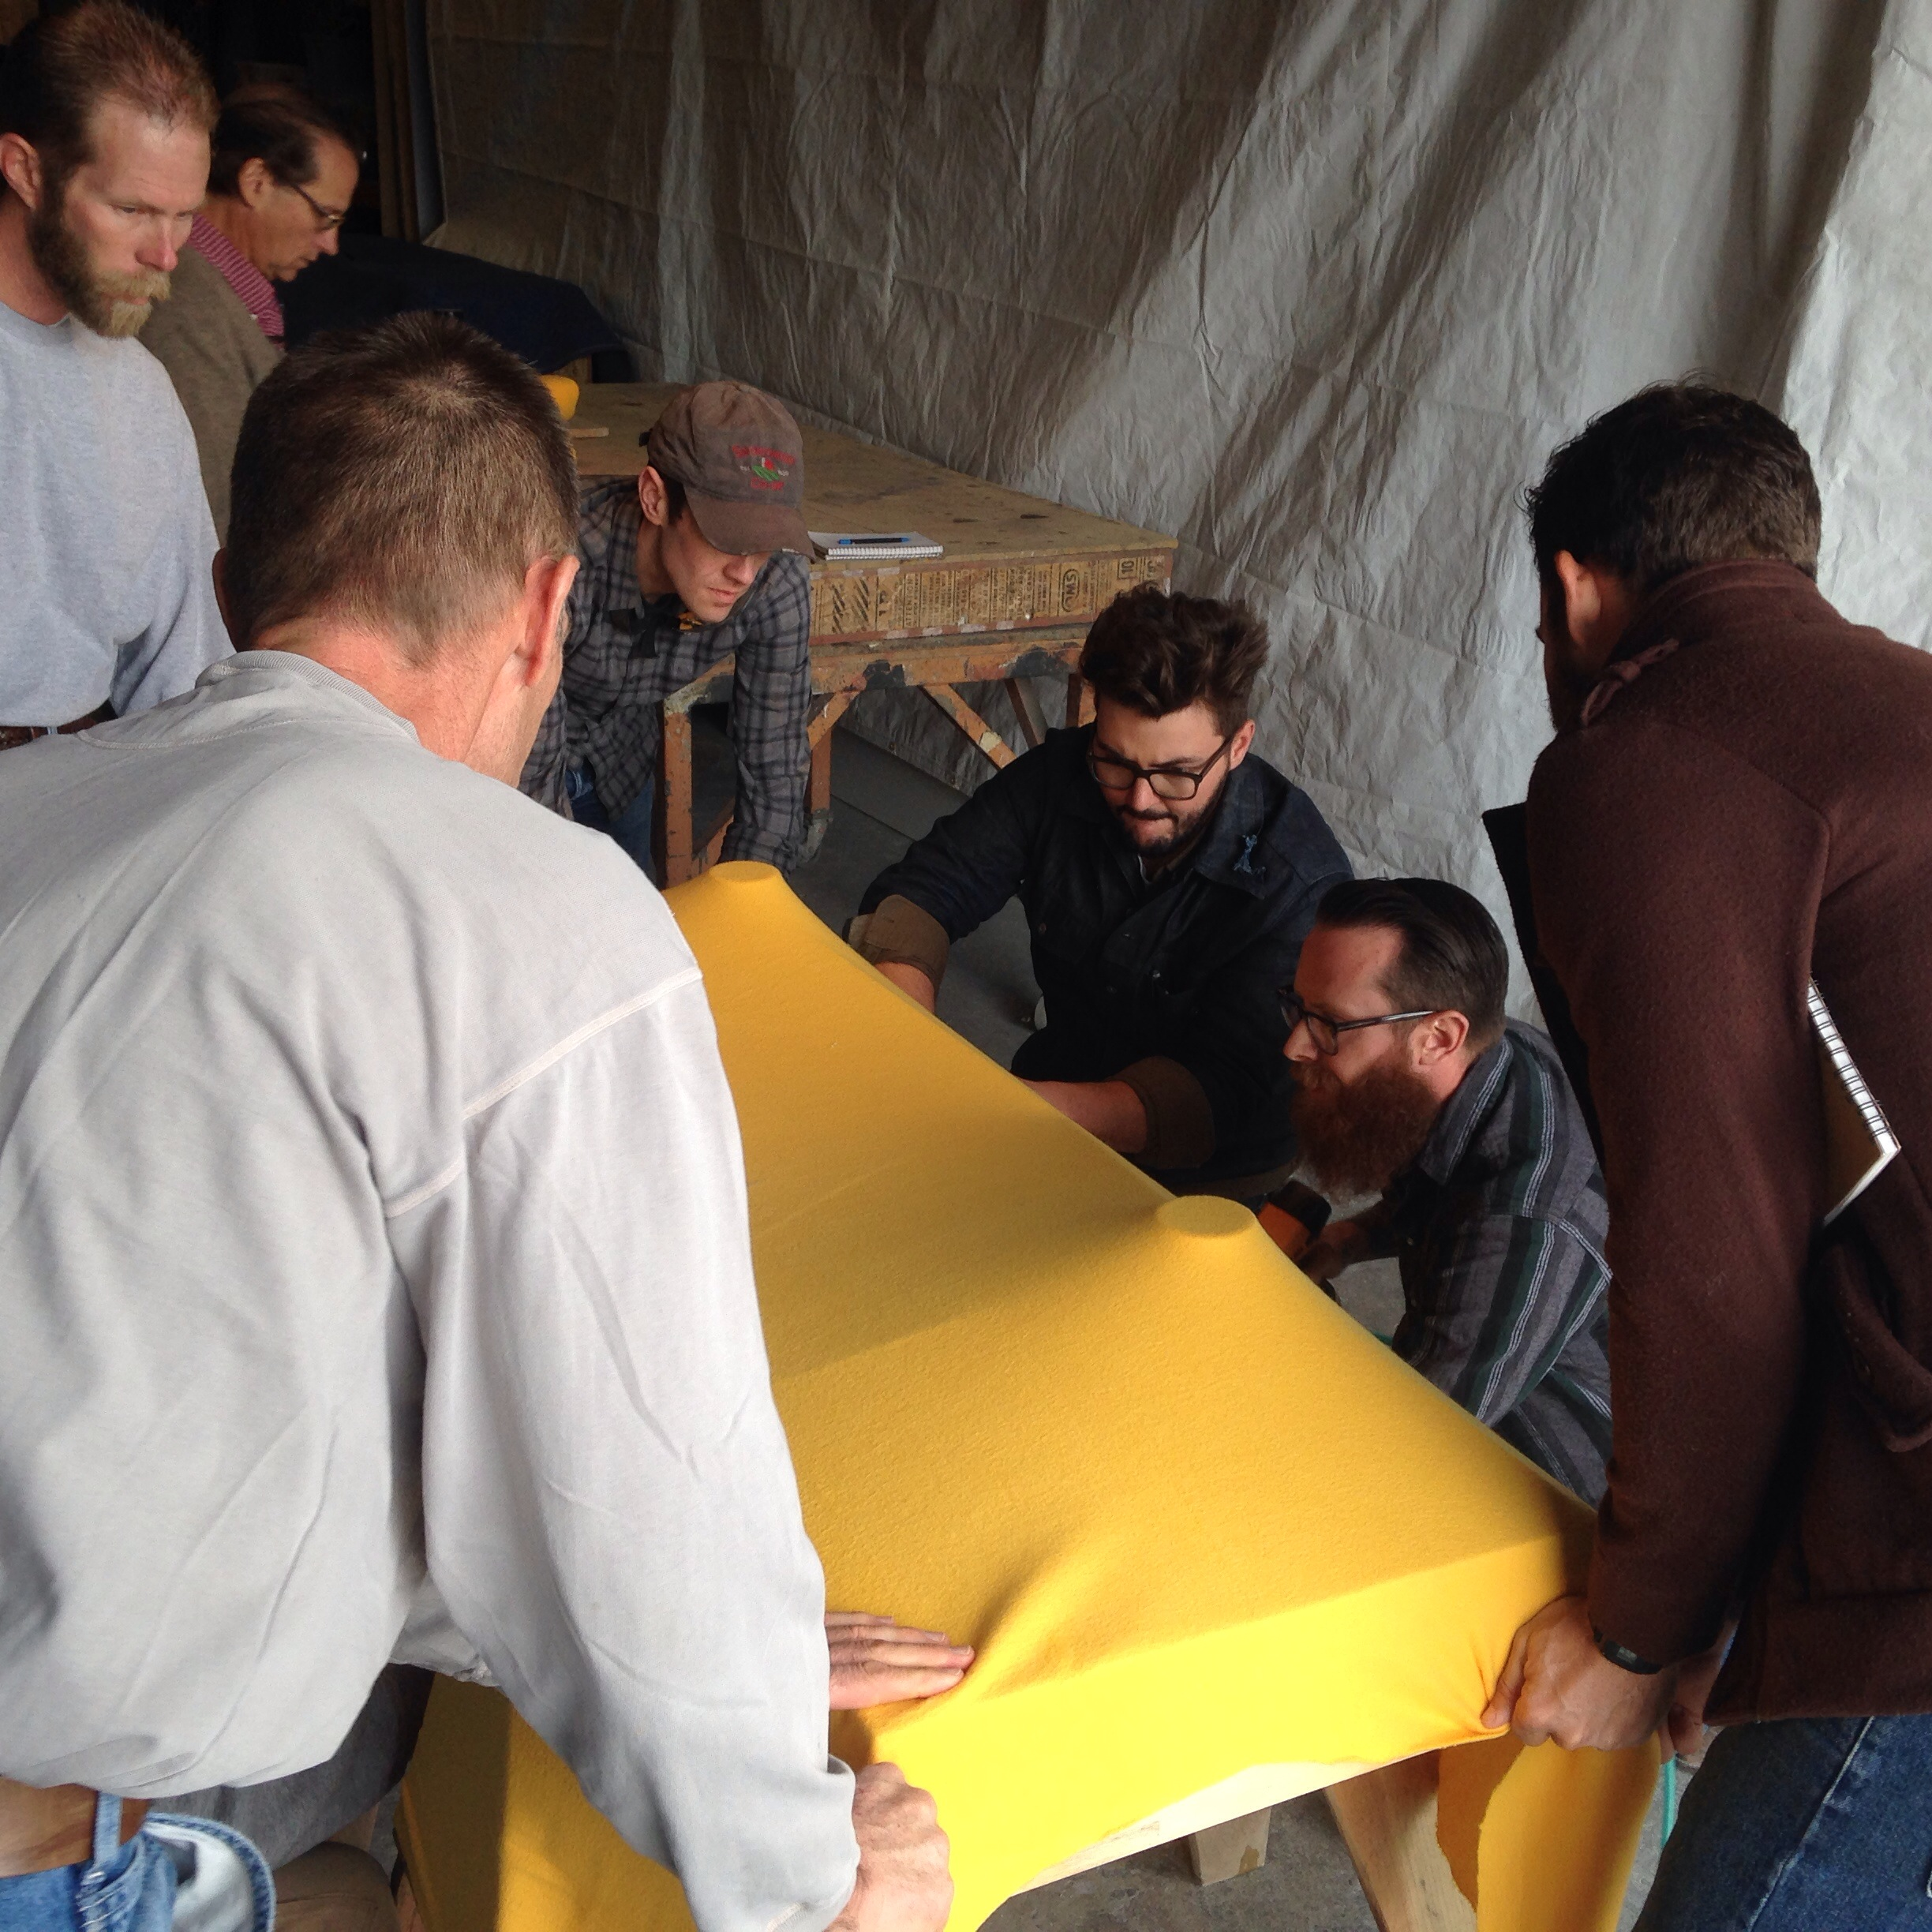 Attendees of a fabric-forming class in the process of creating an aesthetically beautiful and functional concrete sink